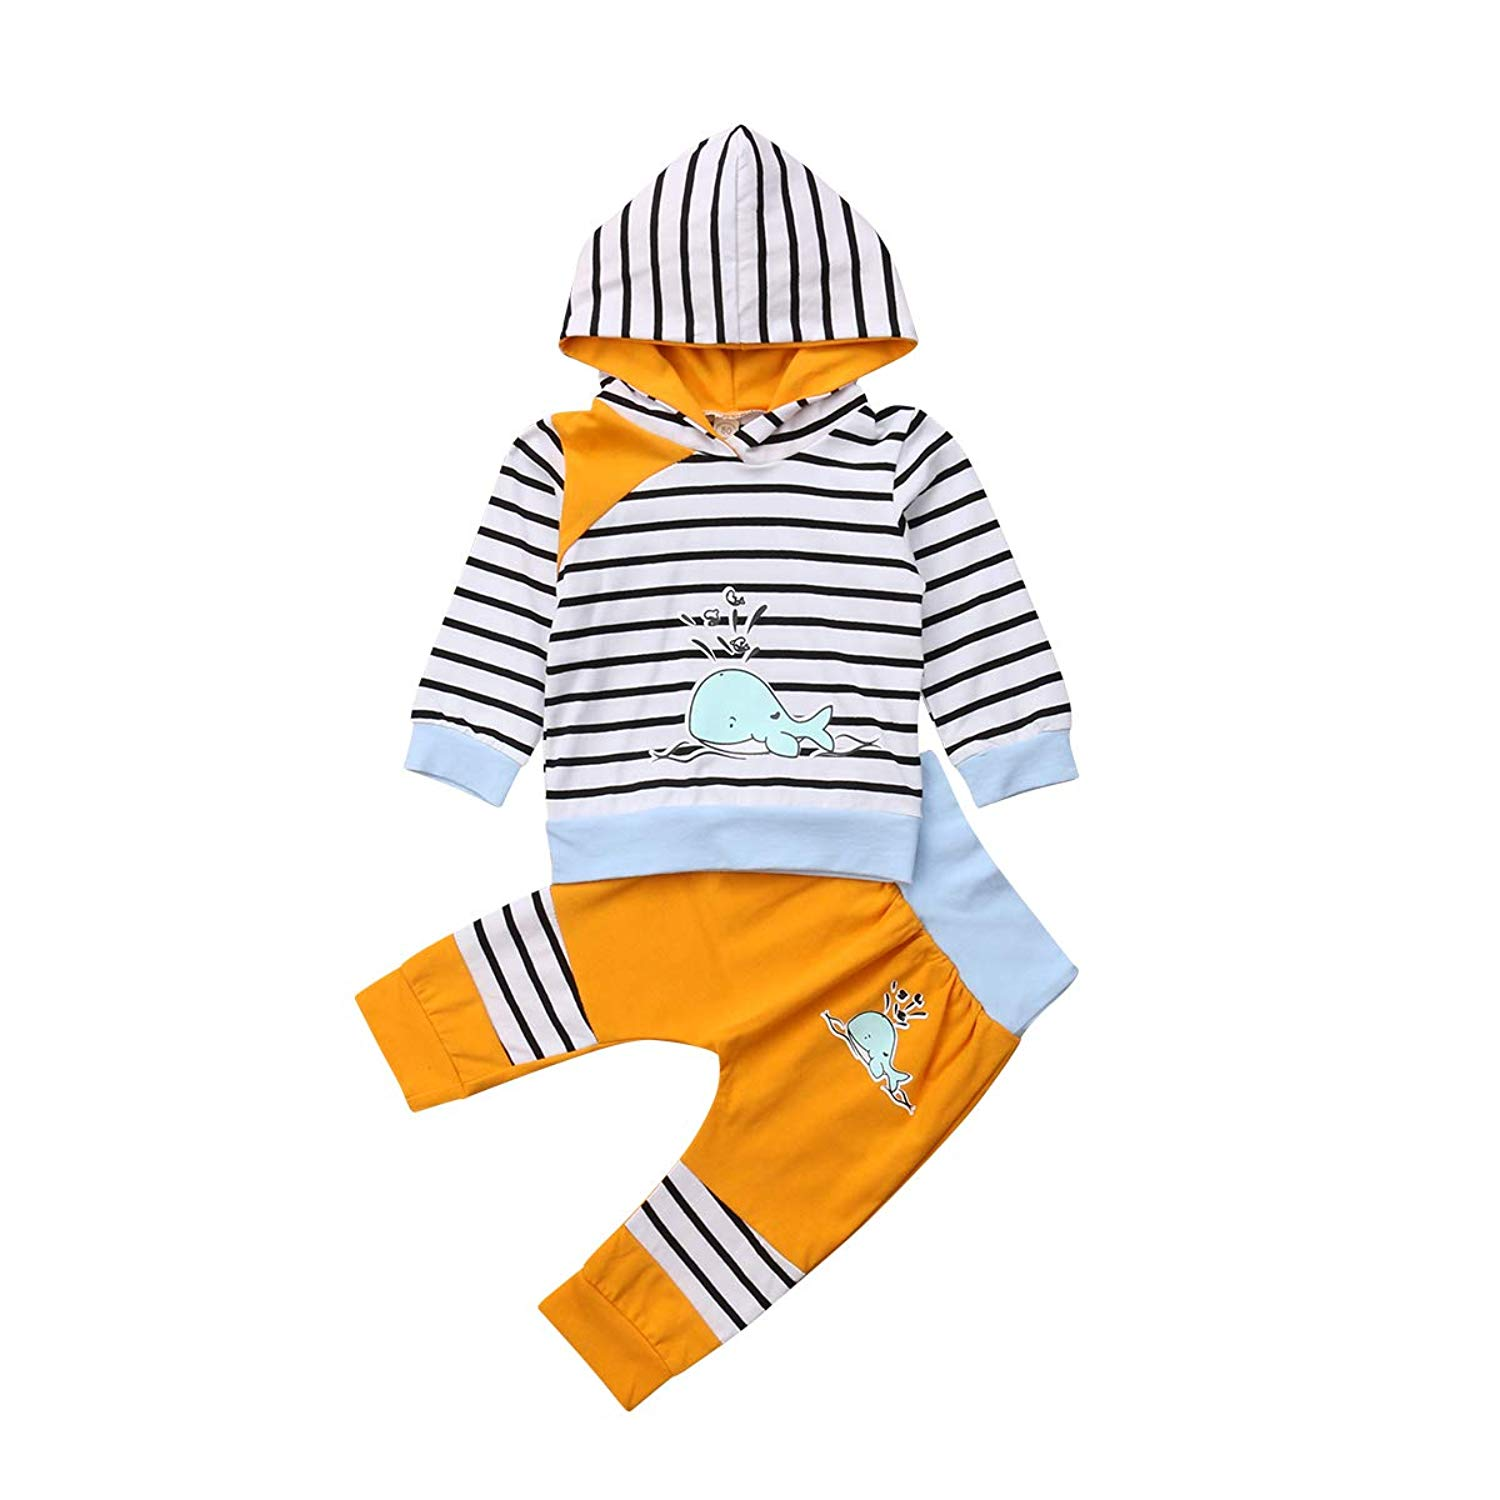 5b319a961 Cheap Cute Baby Boy Outfits